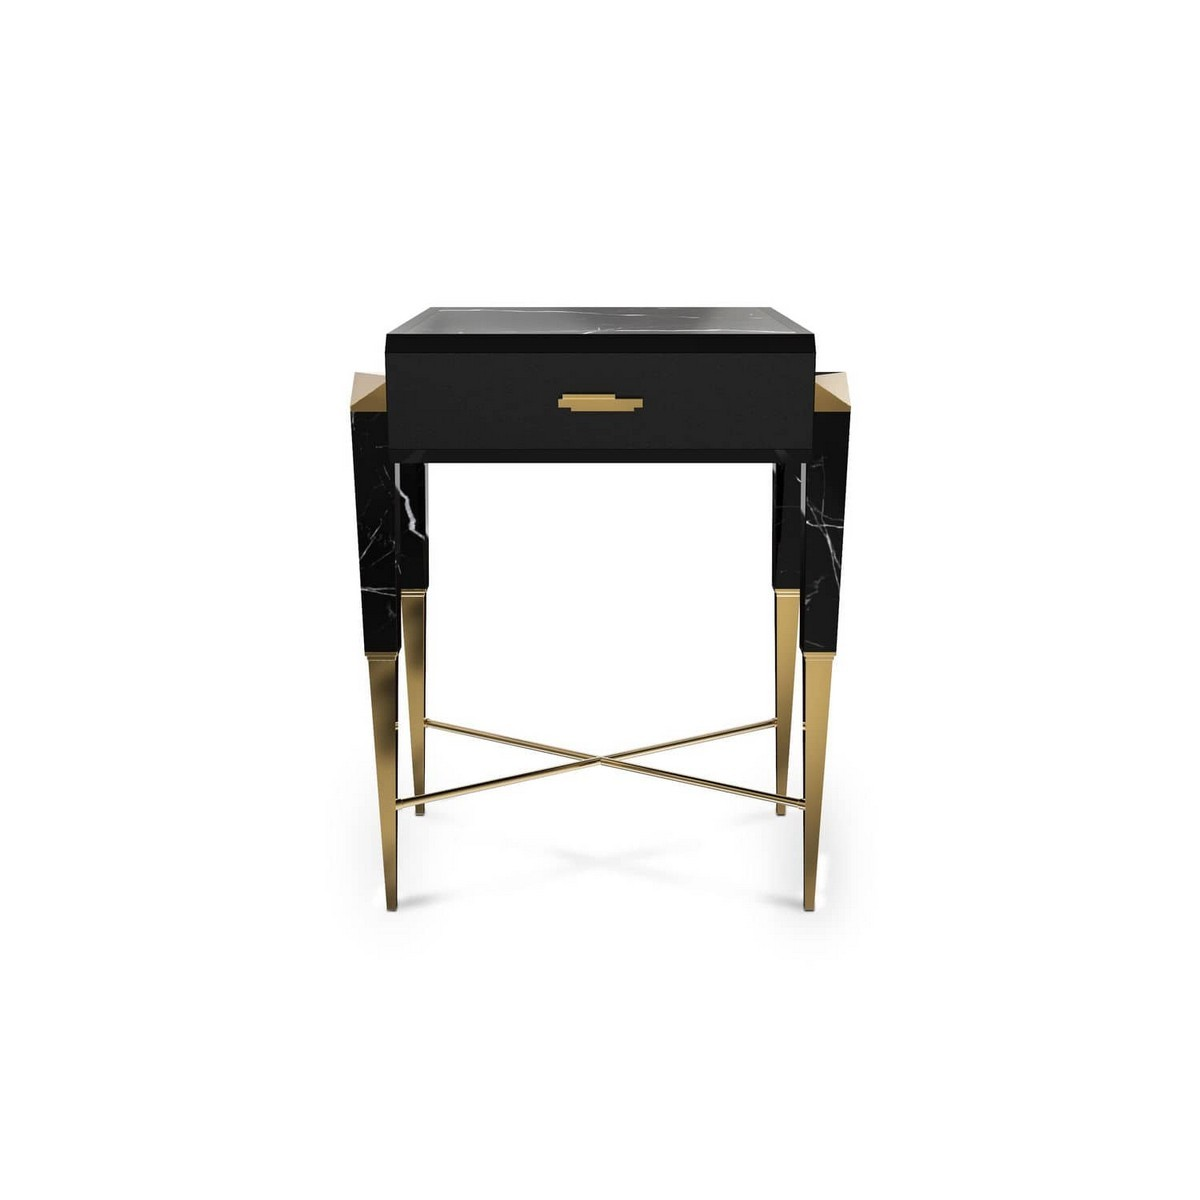 Top Modern Side Tables side tables Top Modern Side Tables spear2